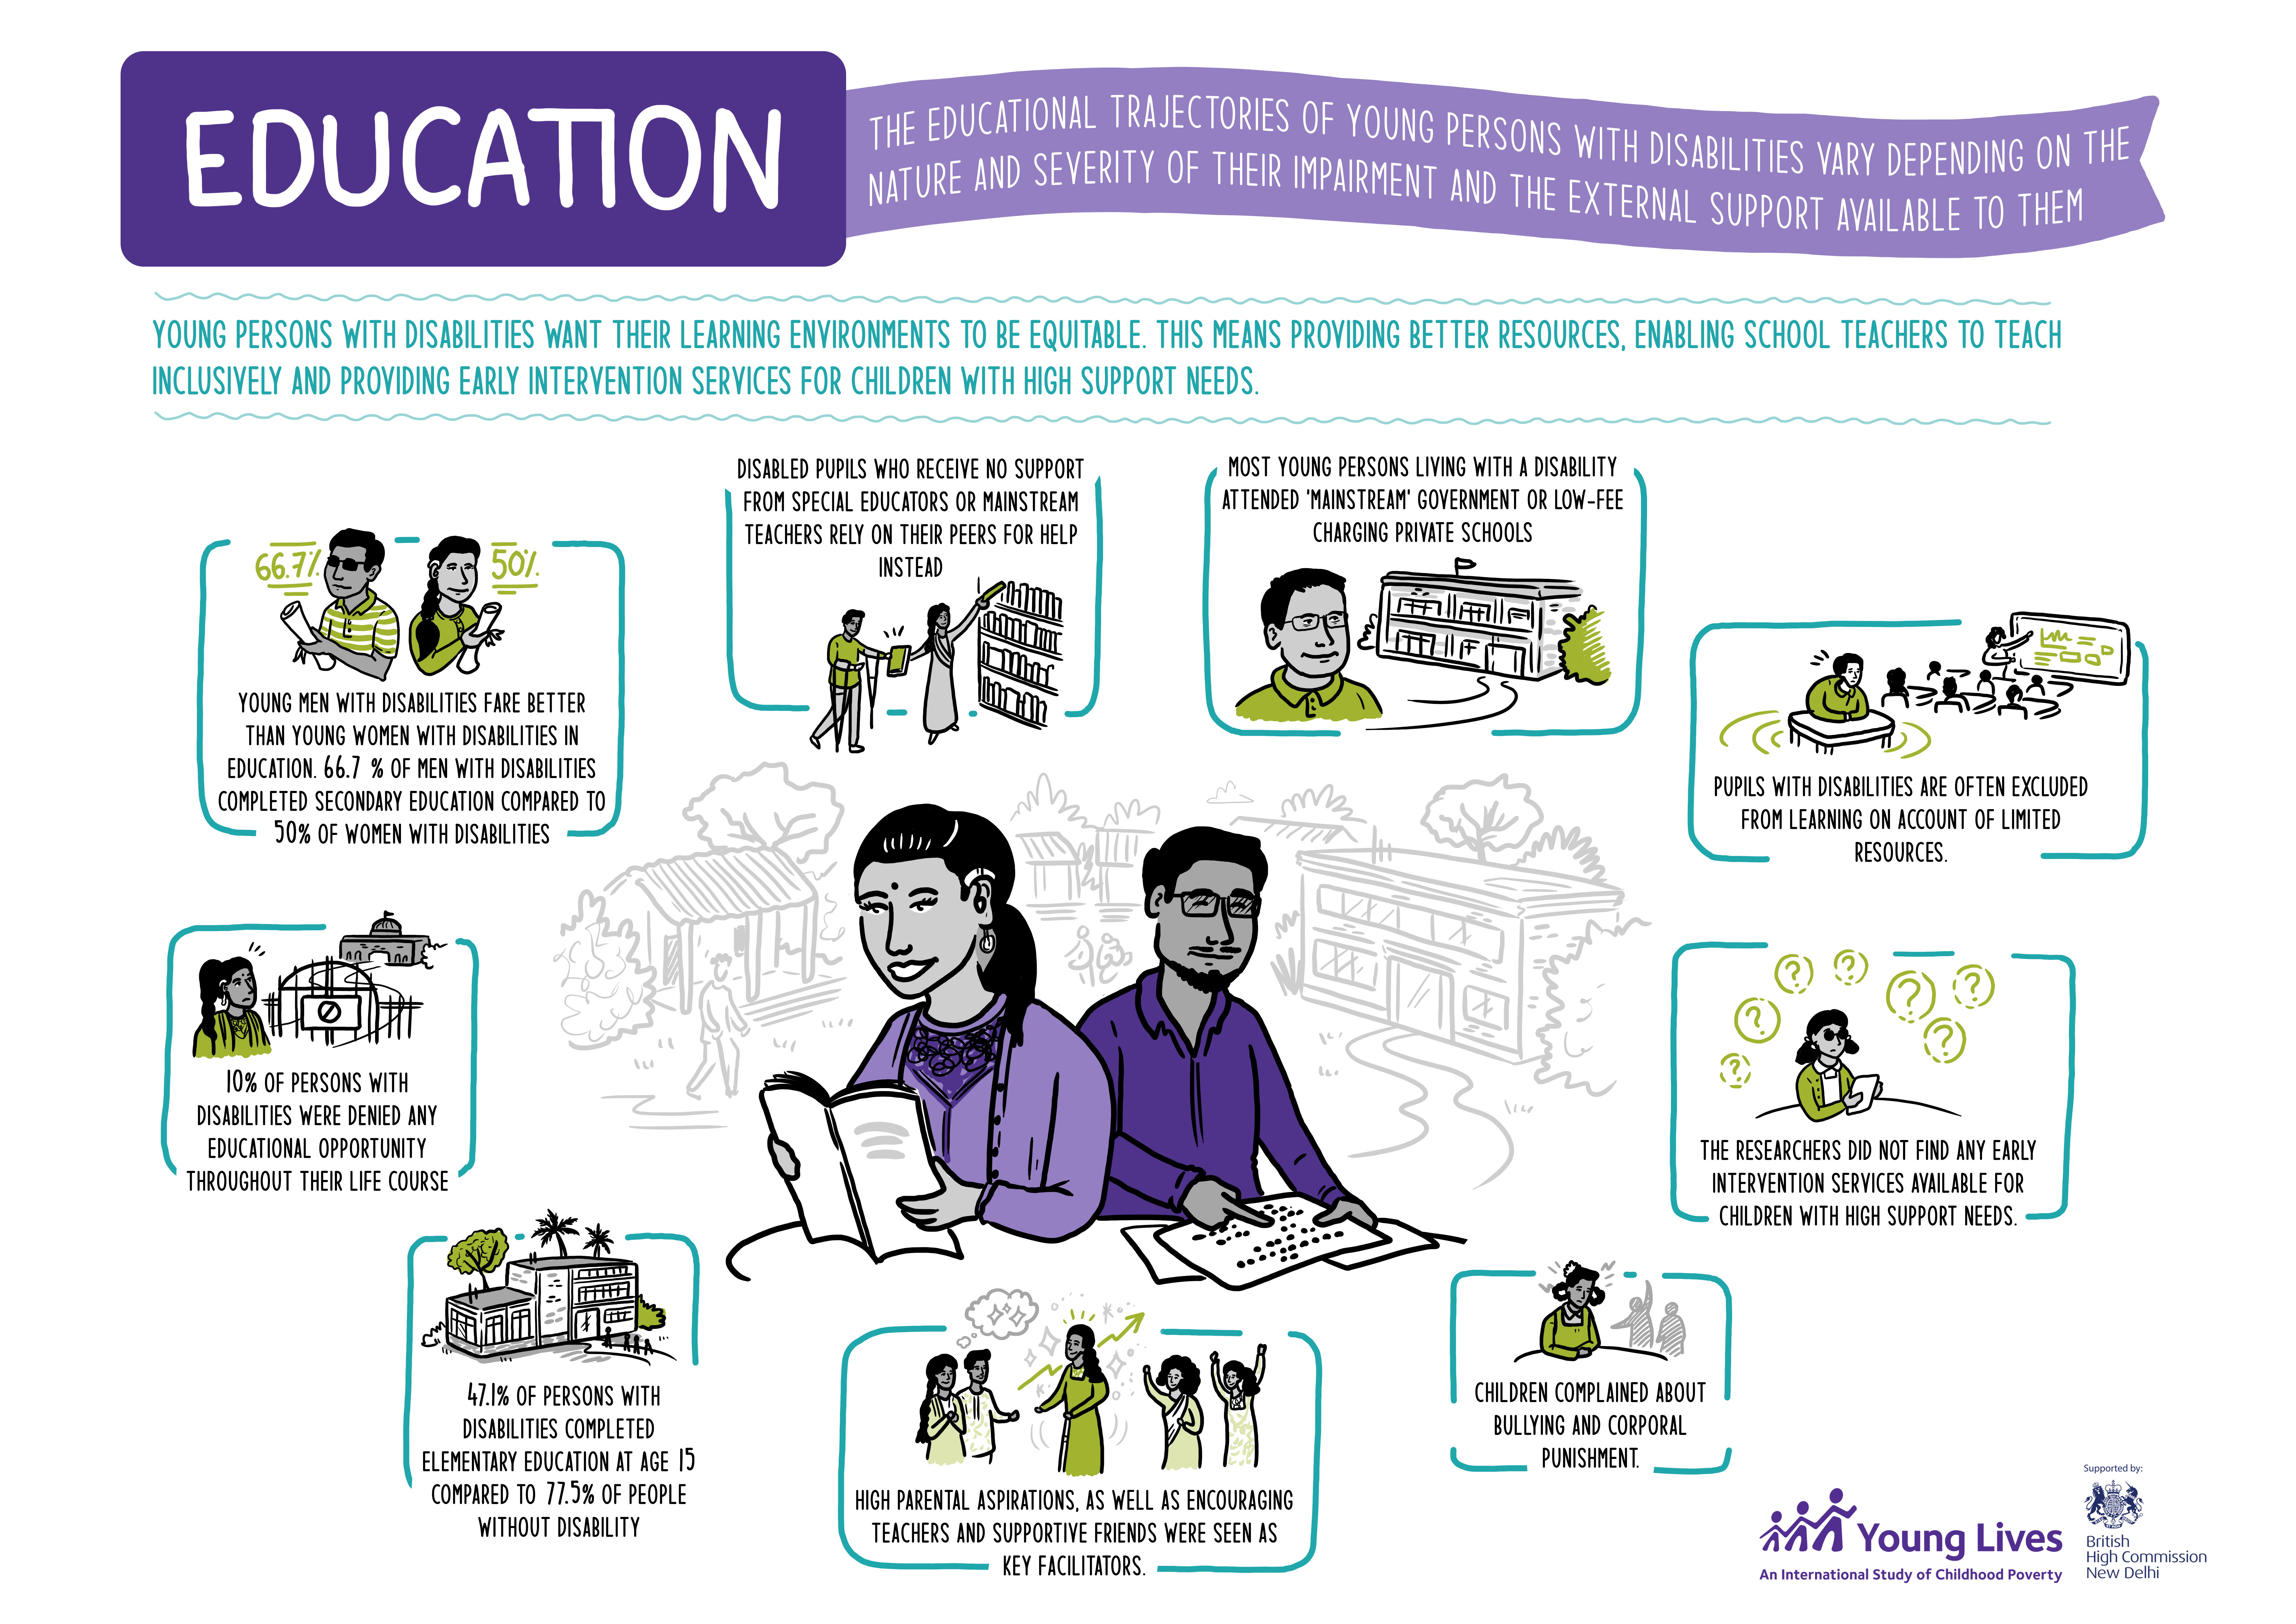 Illustration of Young People living with Disabilities in India